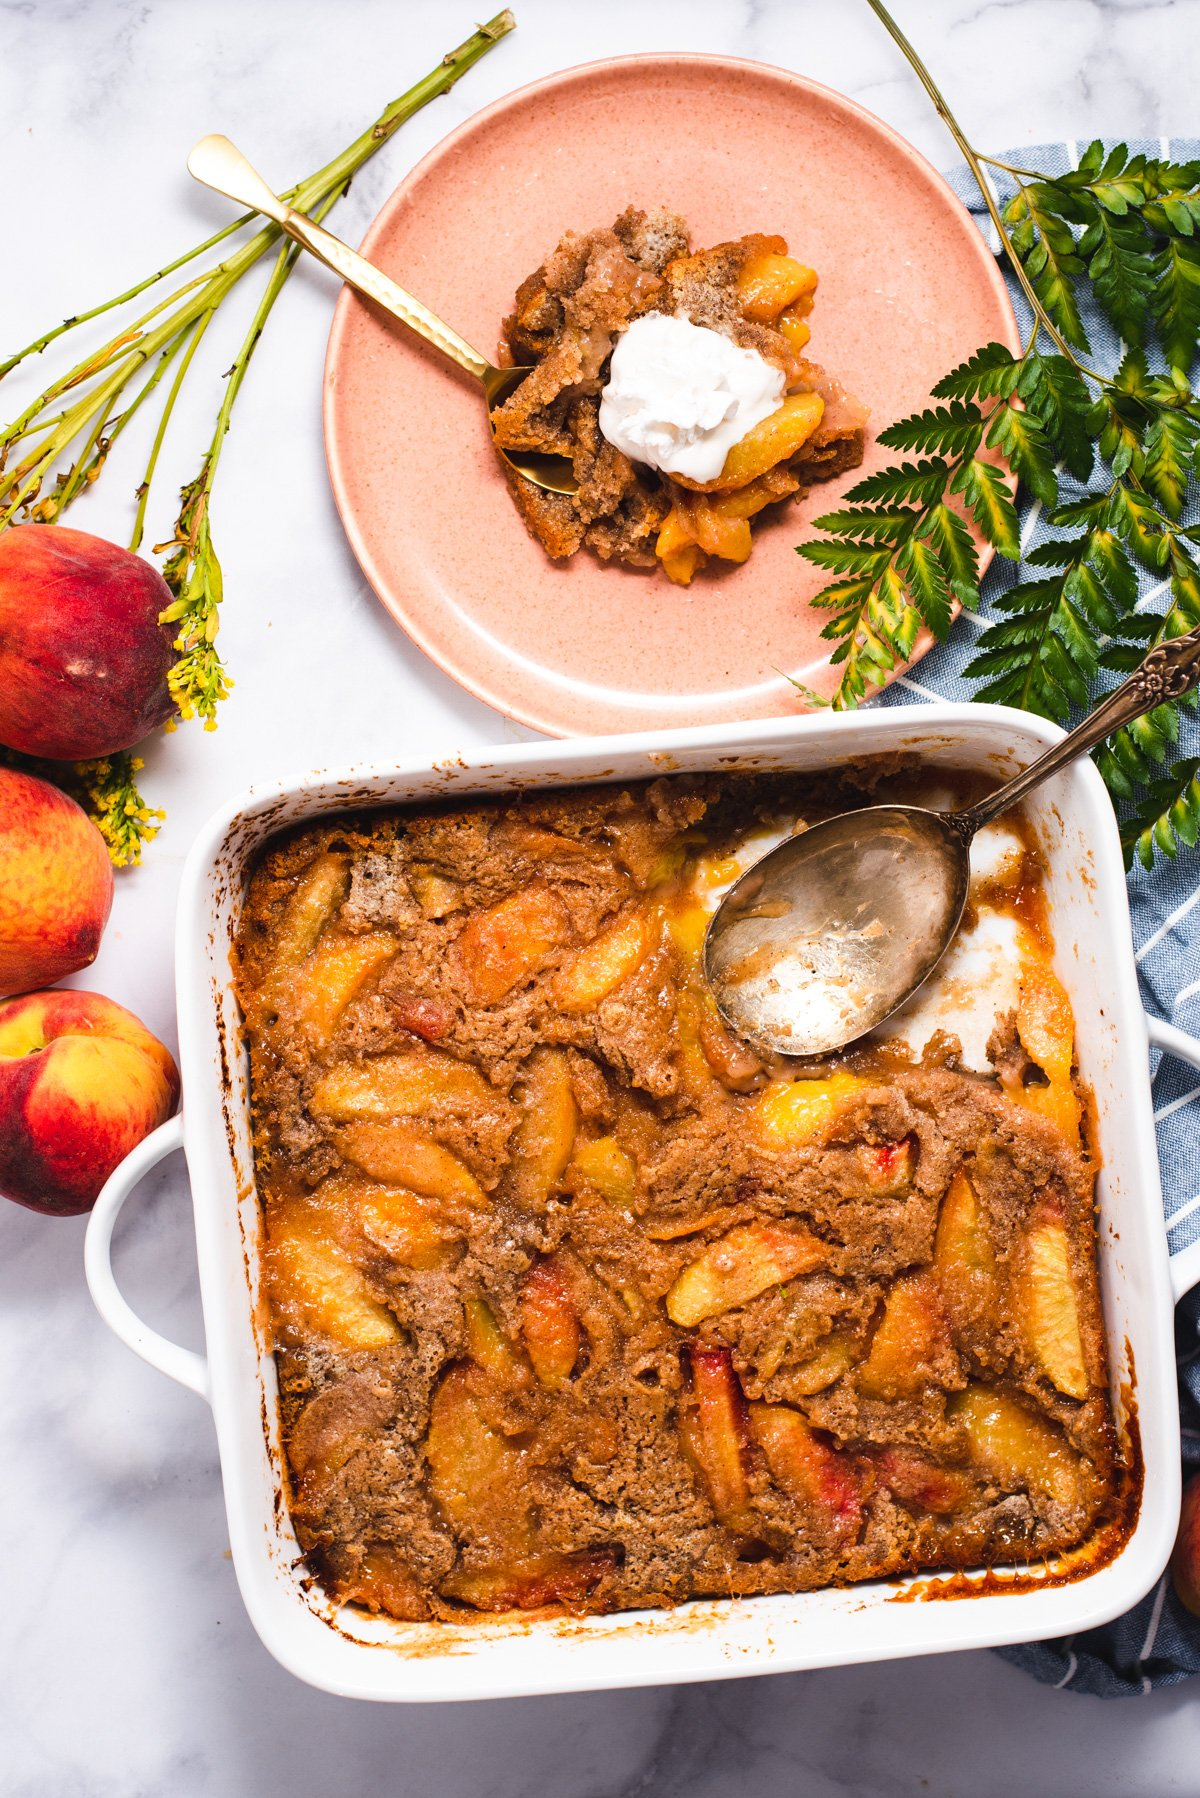 Square white casserole dish of peach cobbler next to pink plate with serving of cobbler